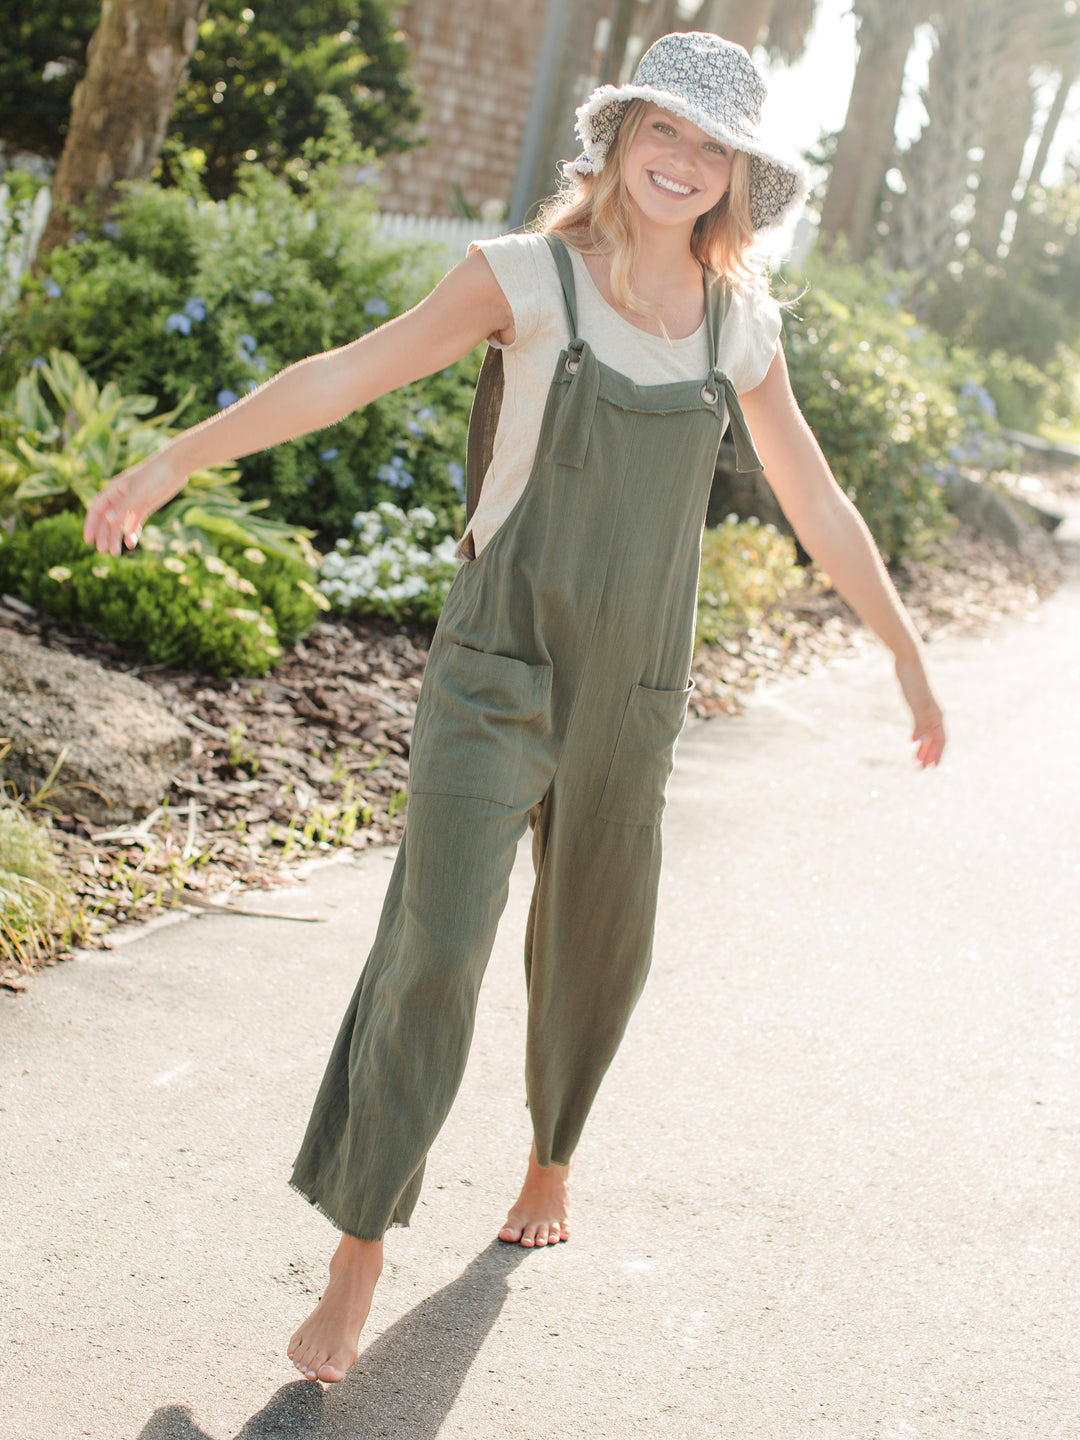 https://cdn.shopify.com/s/files/1/0409/9656/9251/products/Carly_Jumpsuit_Olive-A7_1080x.jpg